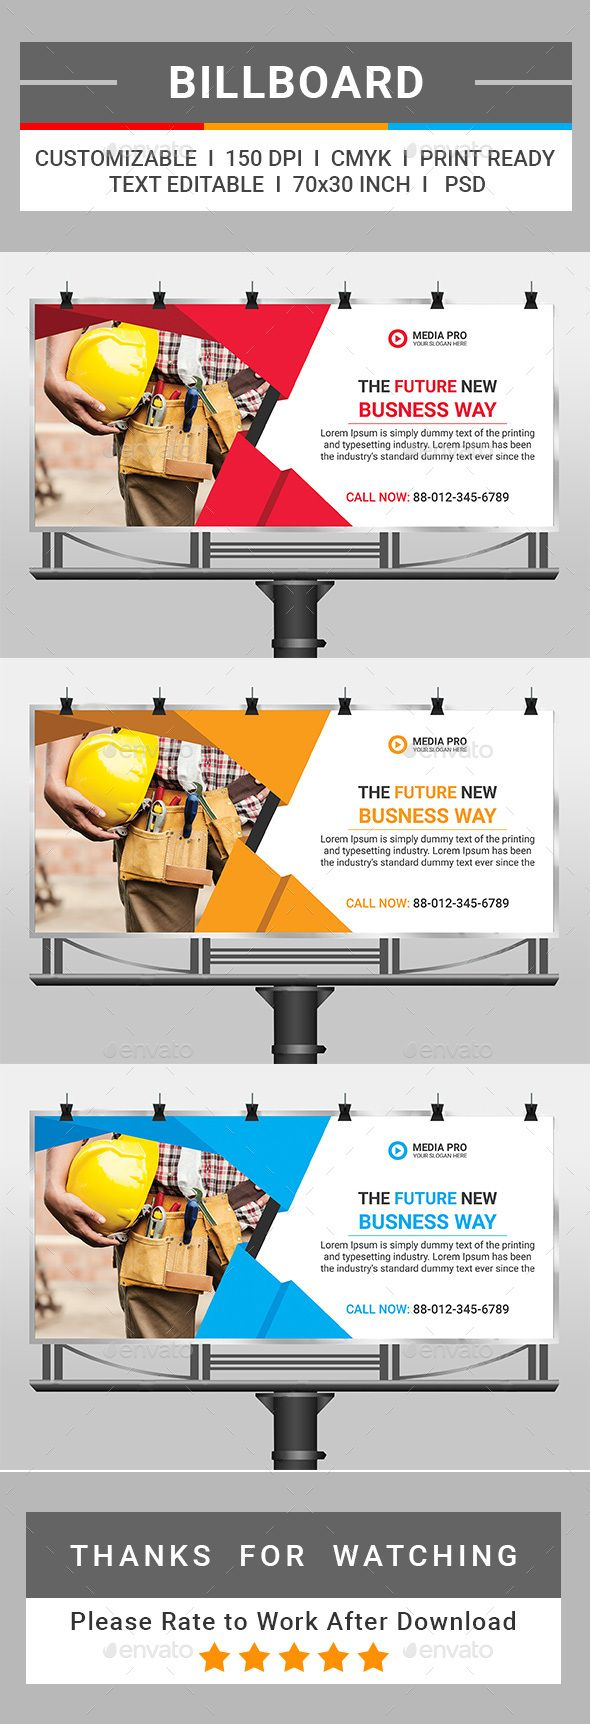 Healthcare-Advertising-Billboard-by-tauhid1989-This-is-a-Corporate-Billboard-Template.-This-template-do Healthcare Advertising : Billboard Template PSD